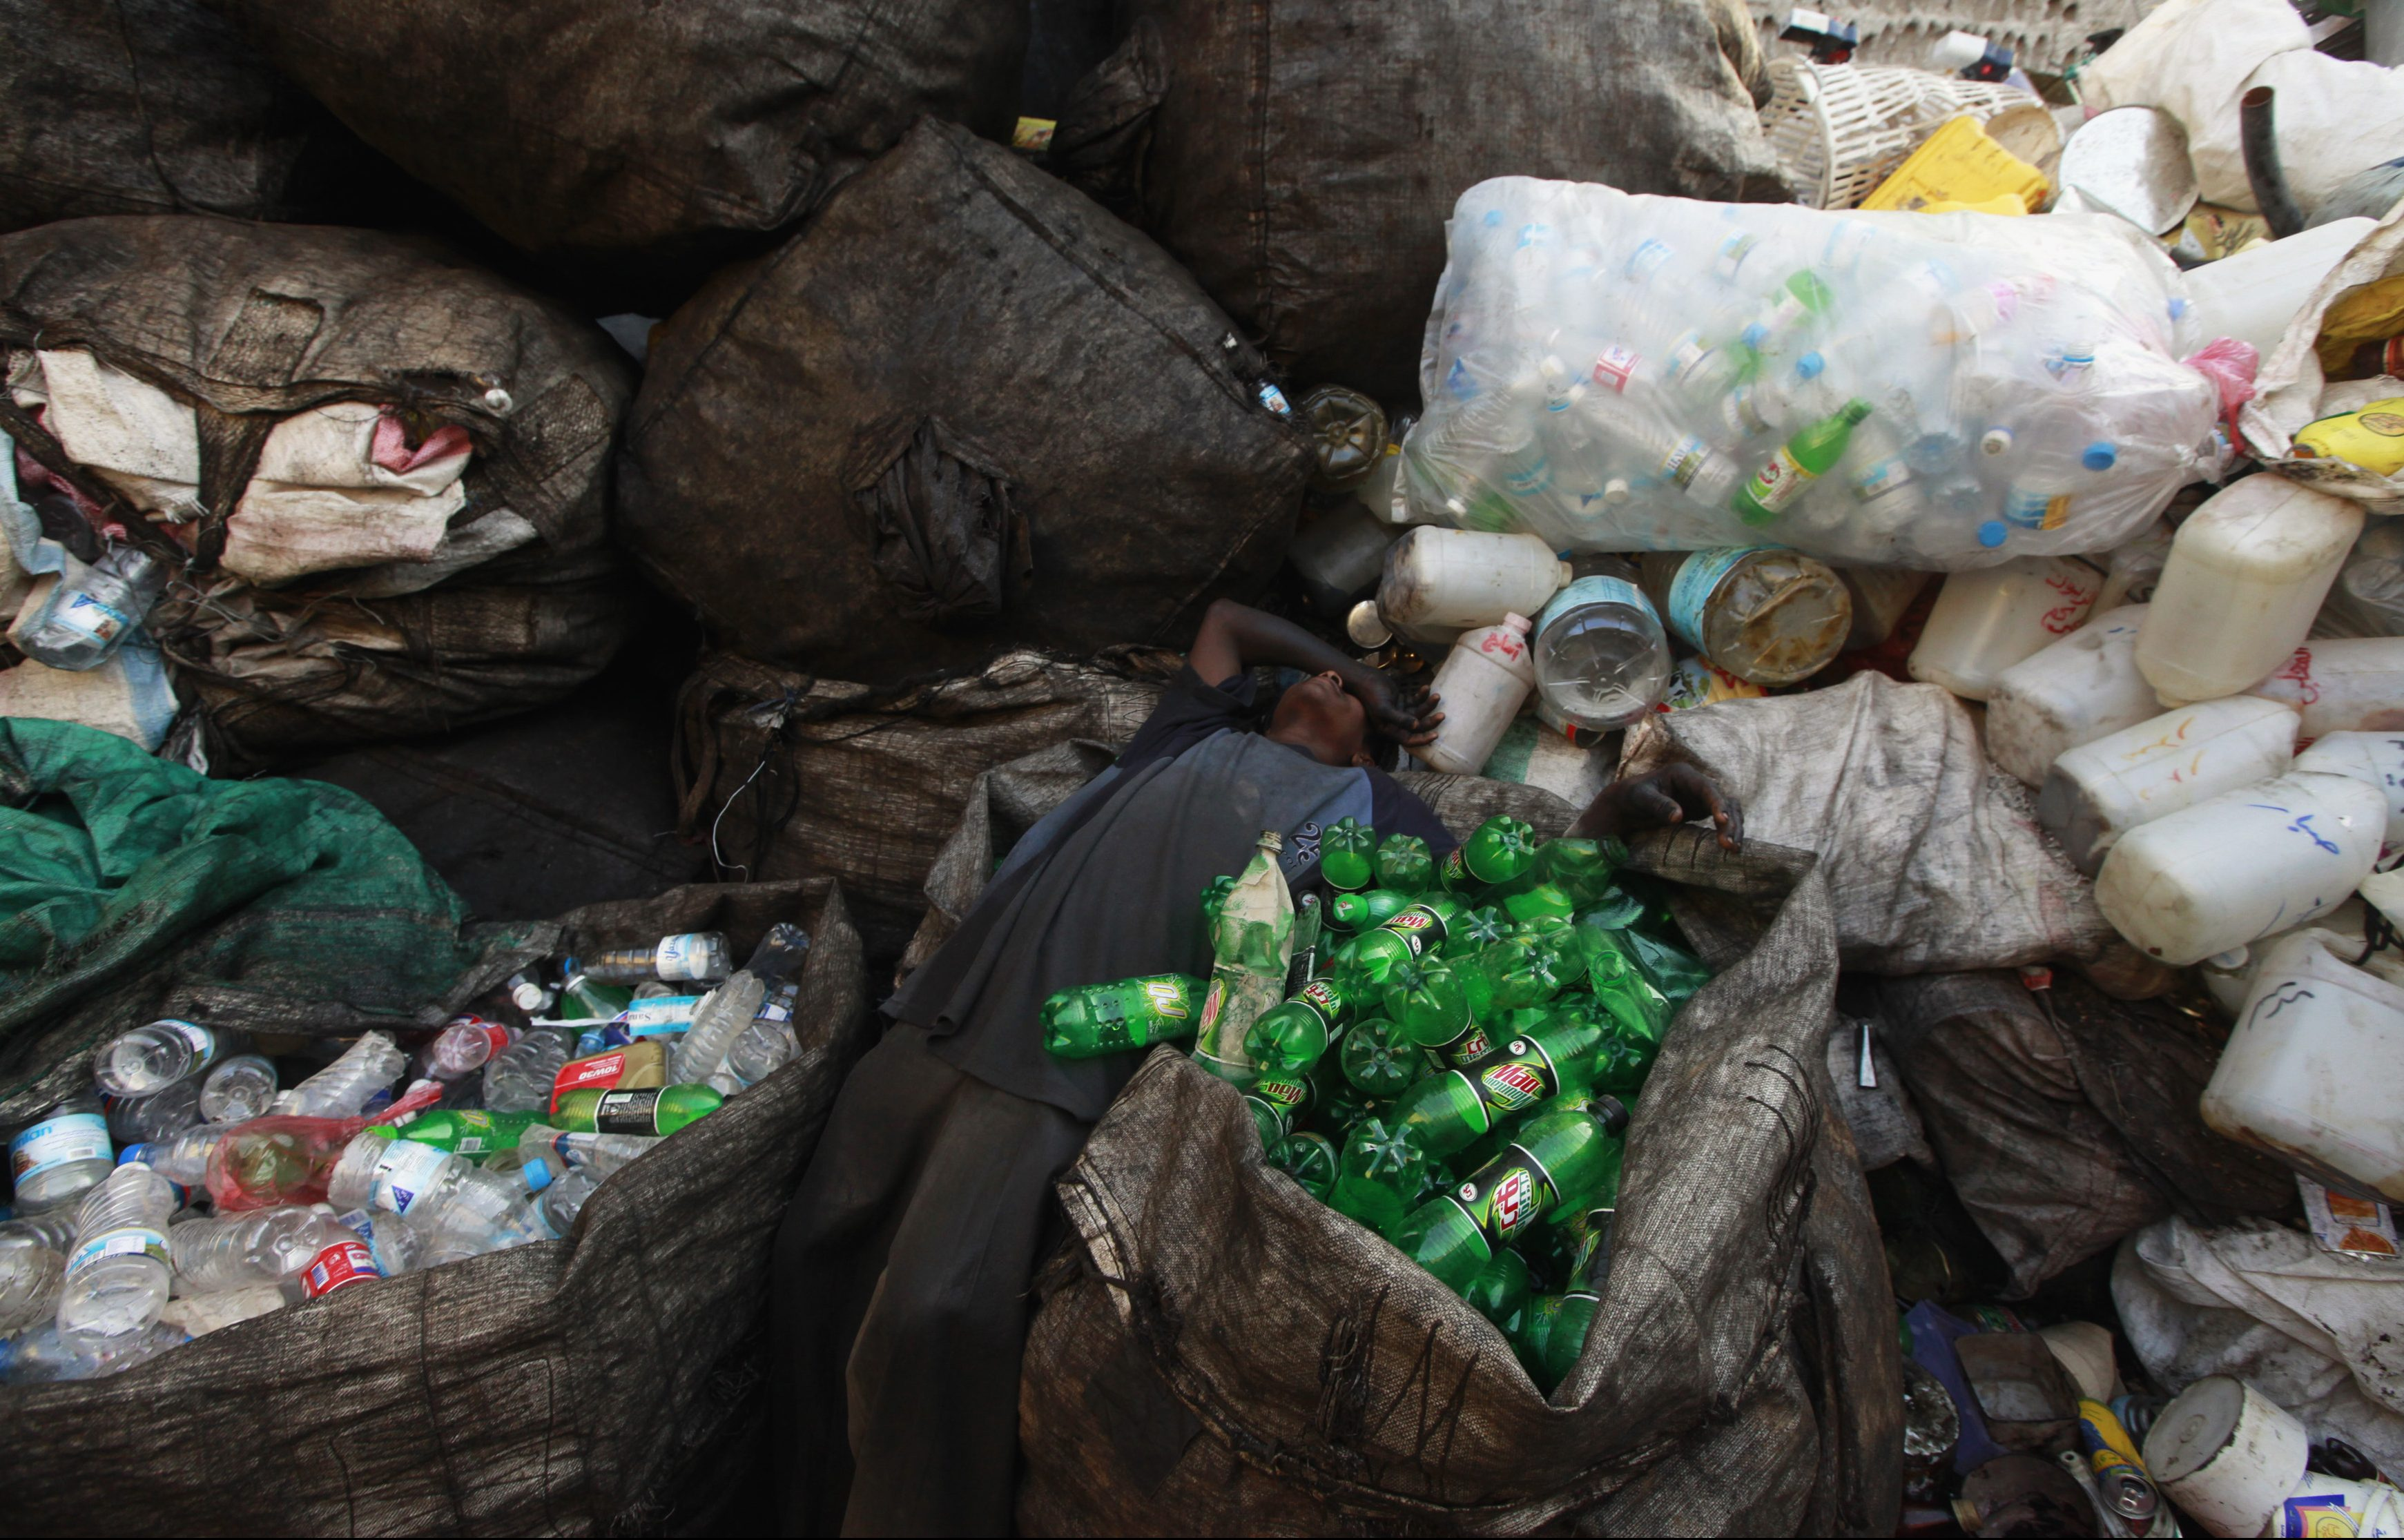 India's plastic waste crisis is too big, even for Modi